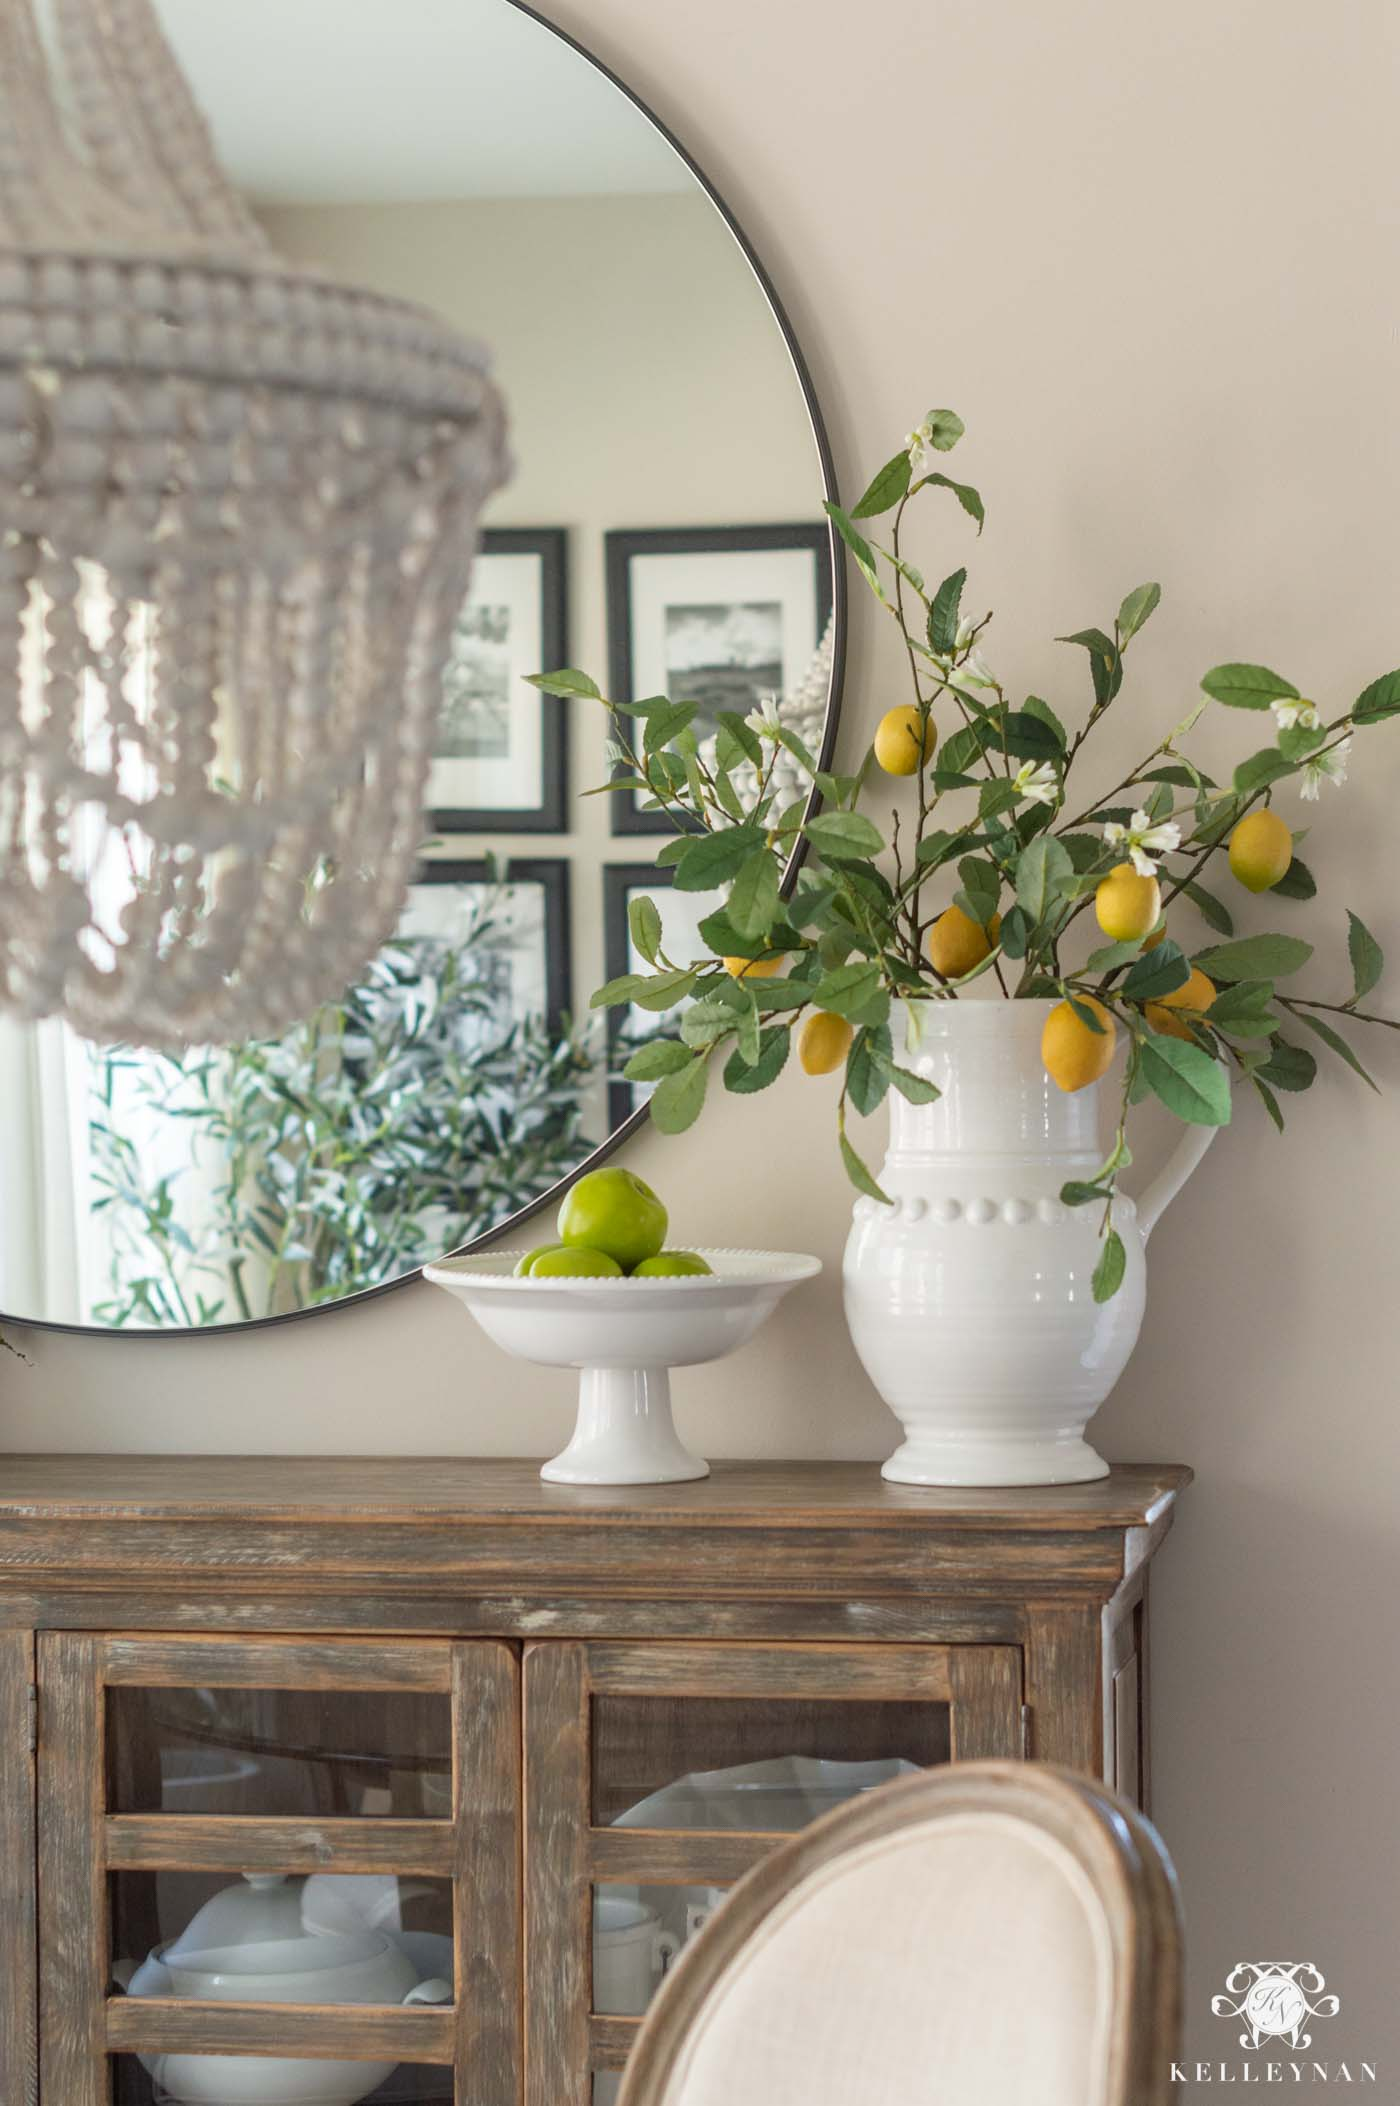 Easy Spring Decorating with Faux Flowers and Stems